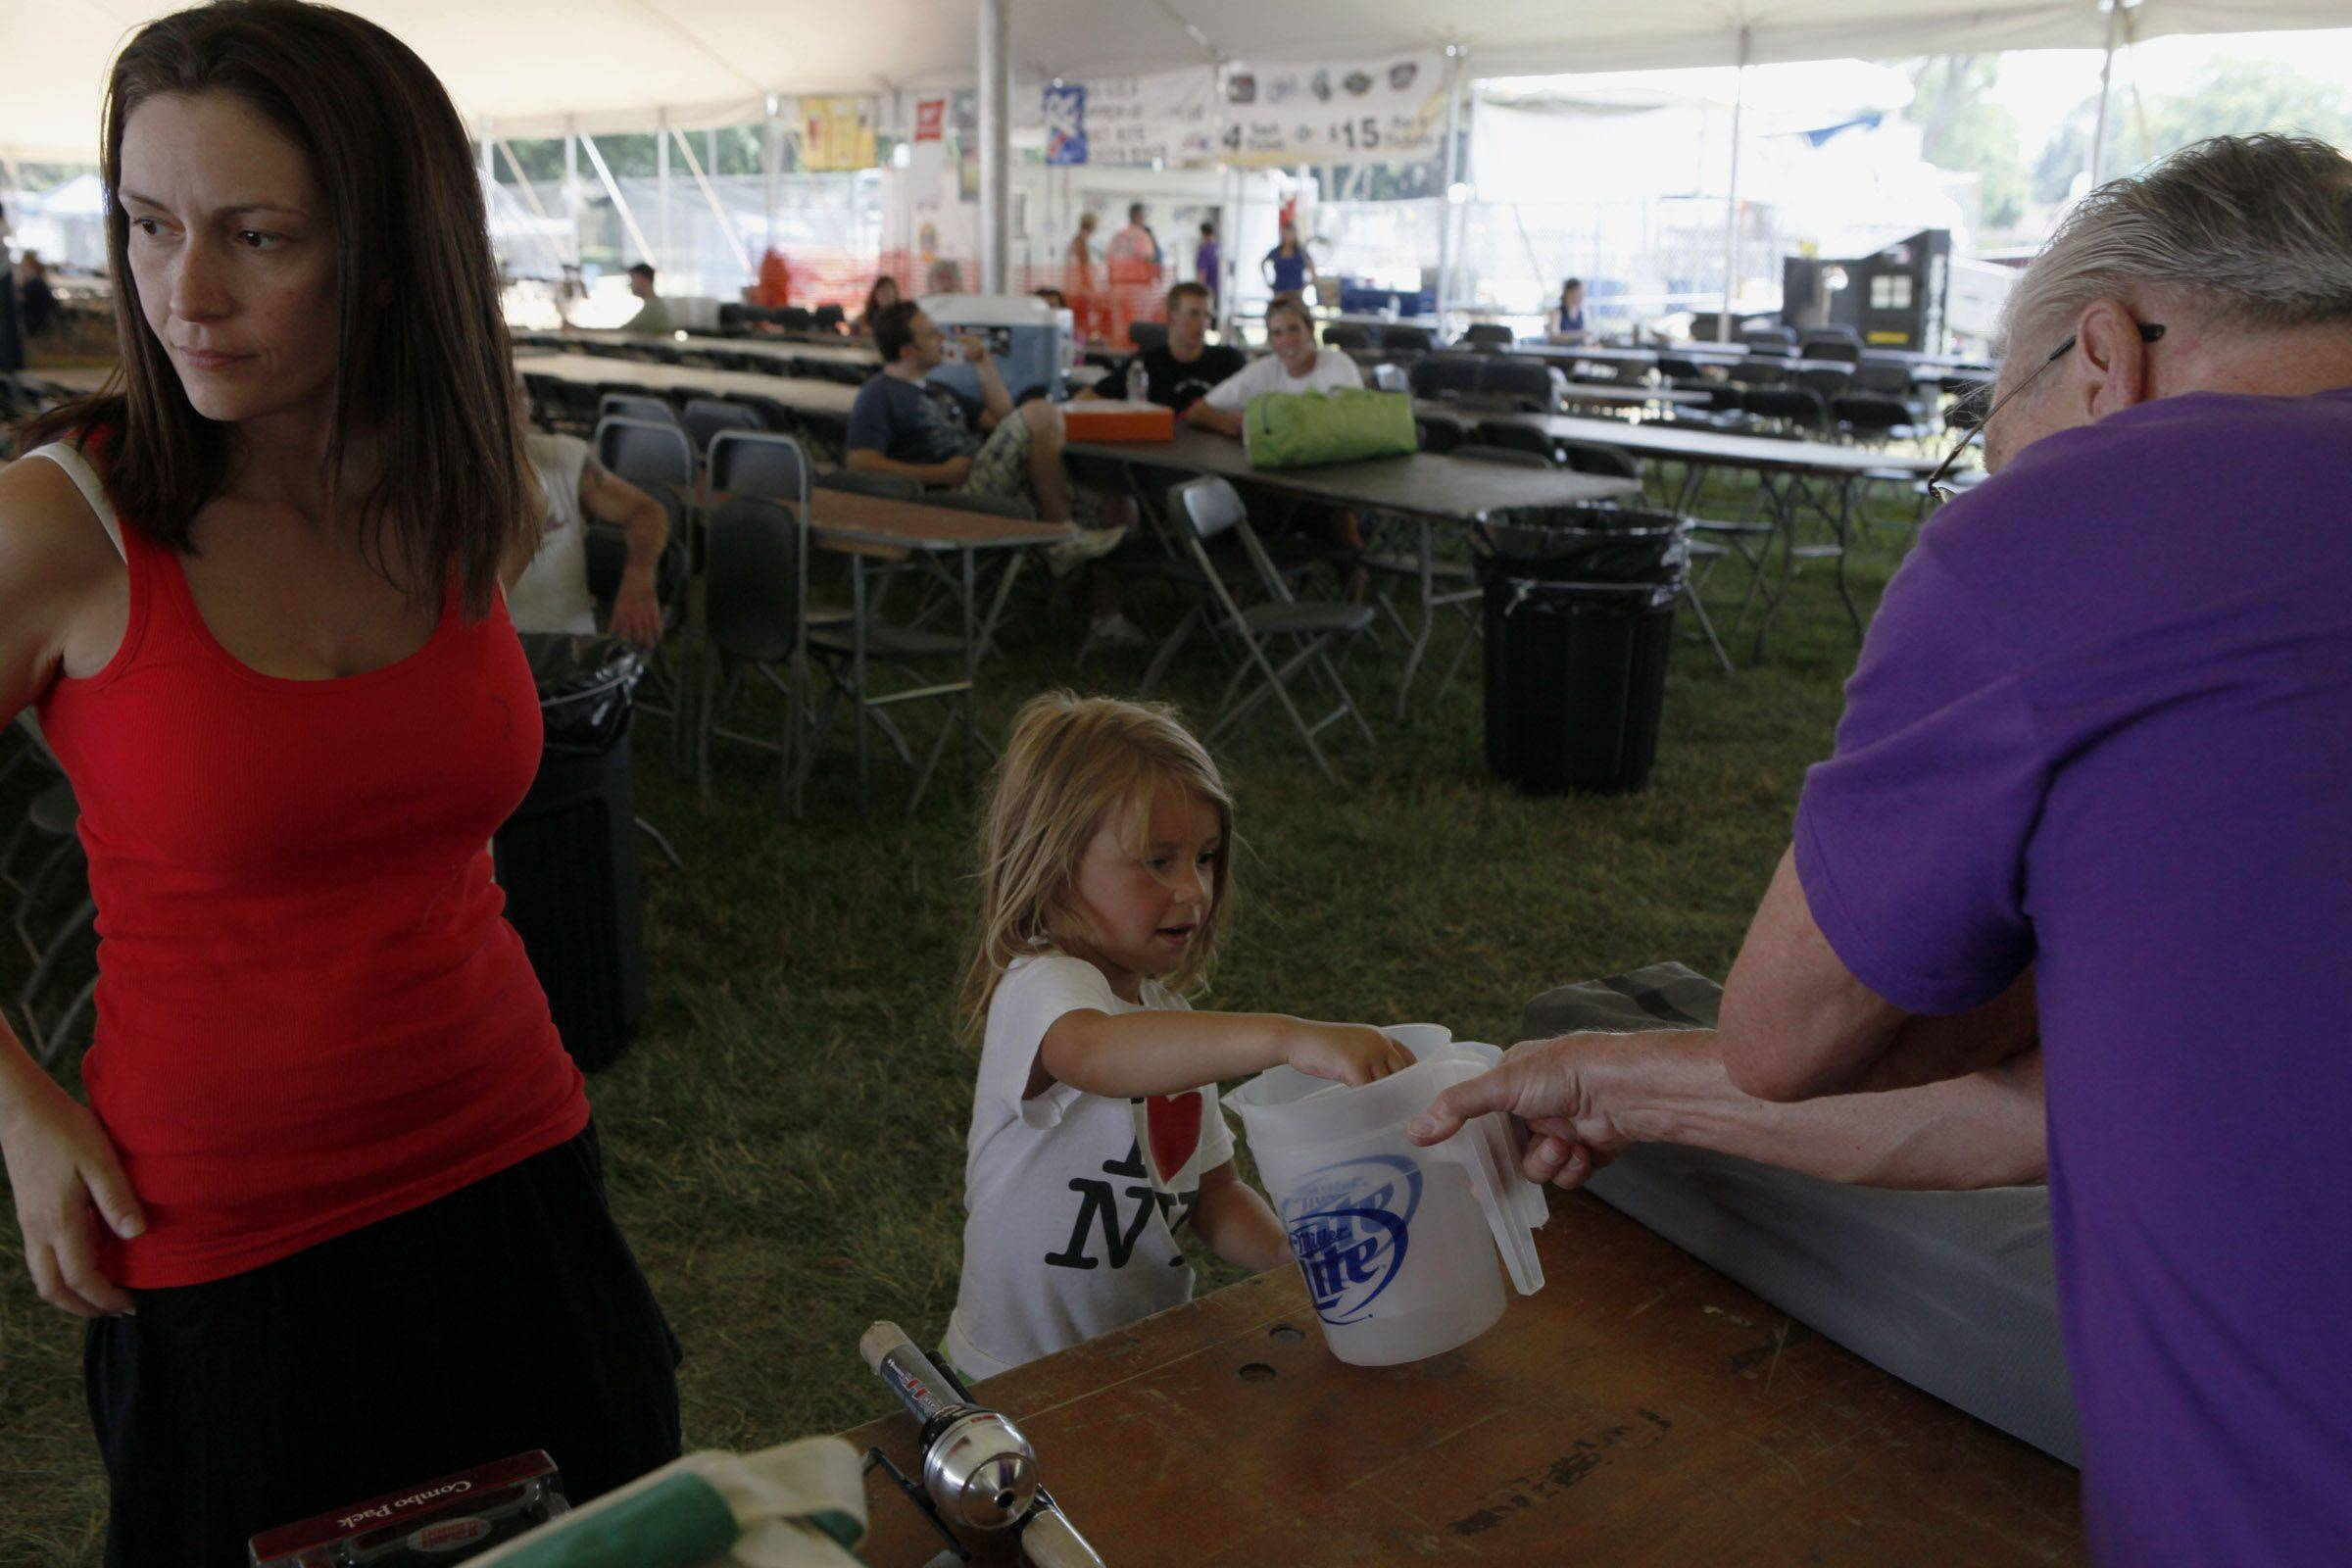 Emma Caniglia won the last drawing, so she got to pull the next ticket in Sunday's Happy Acre Fishing Derby prize giveaway Sunday during Itasca Fest. Her mom, Marianne, left, helped her pick out a prize.